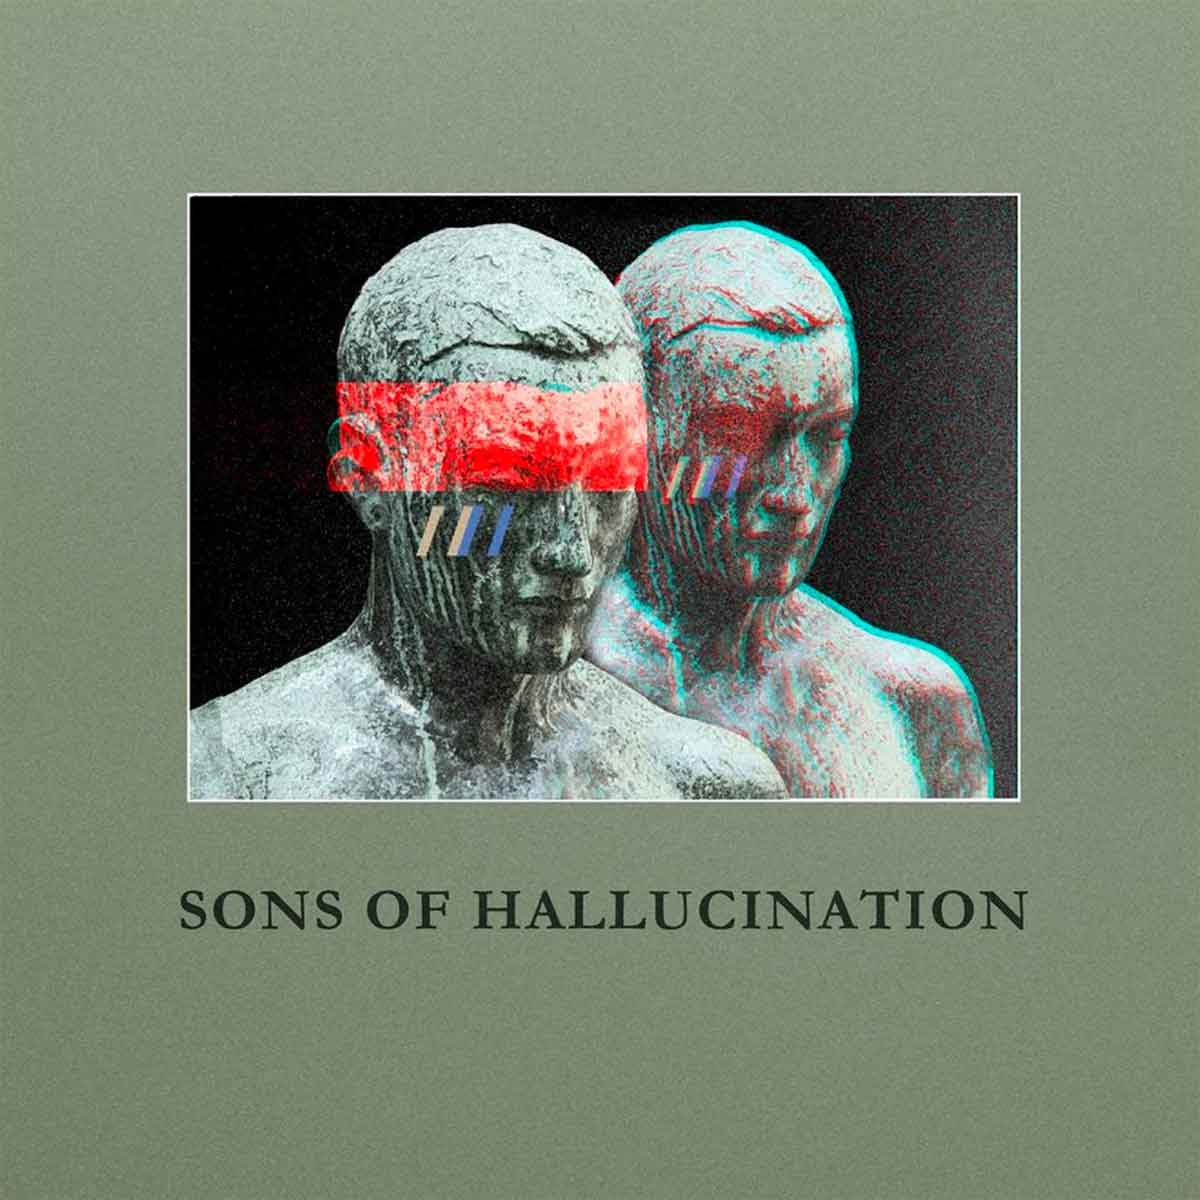 steven joens and logan sky sons of hallucination cover art